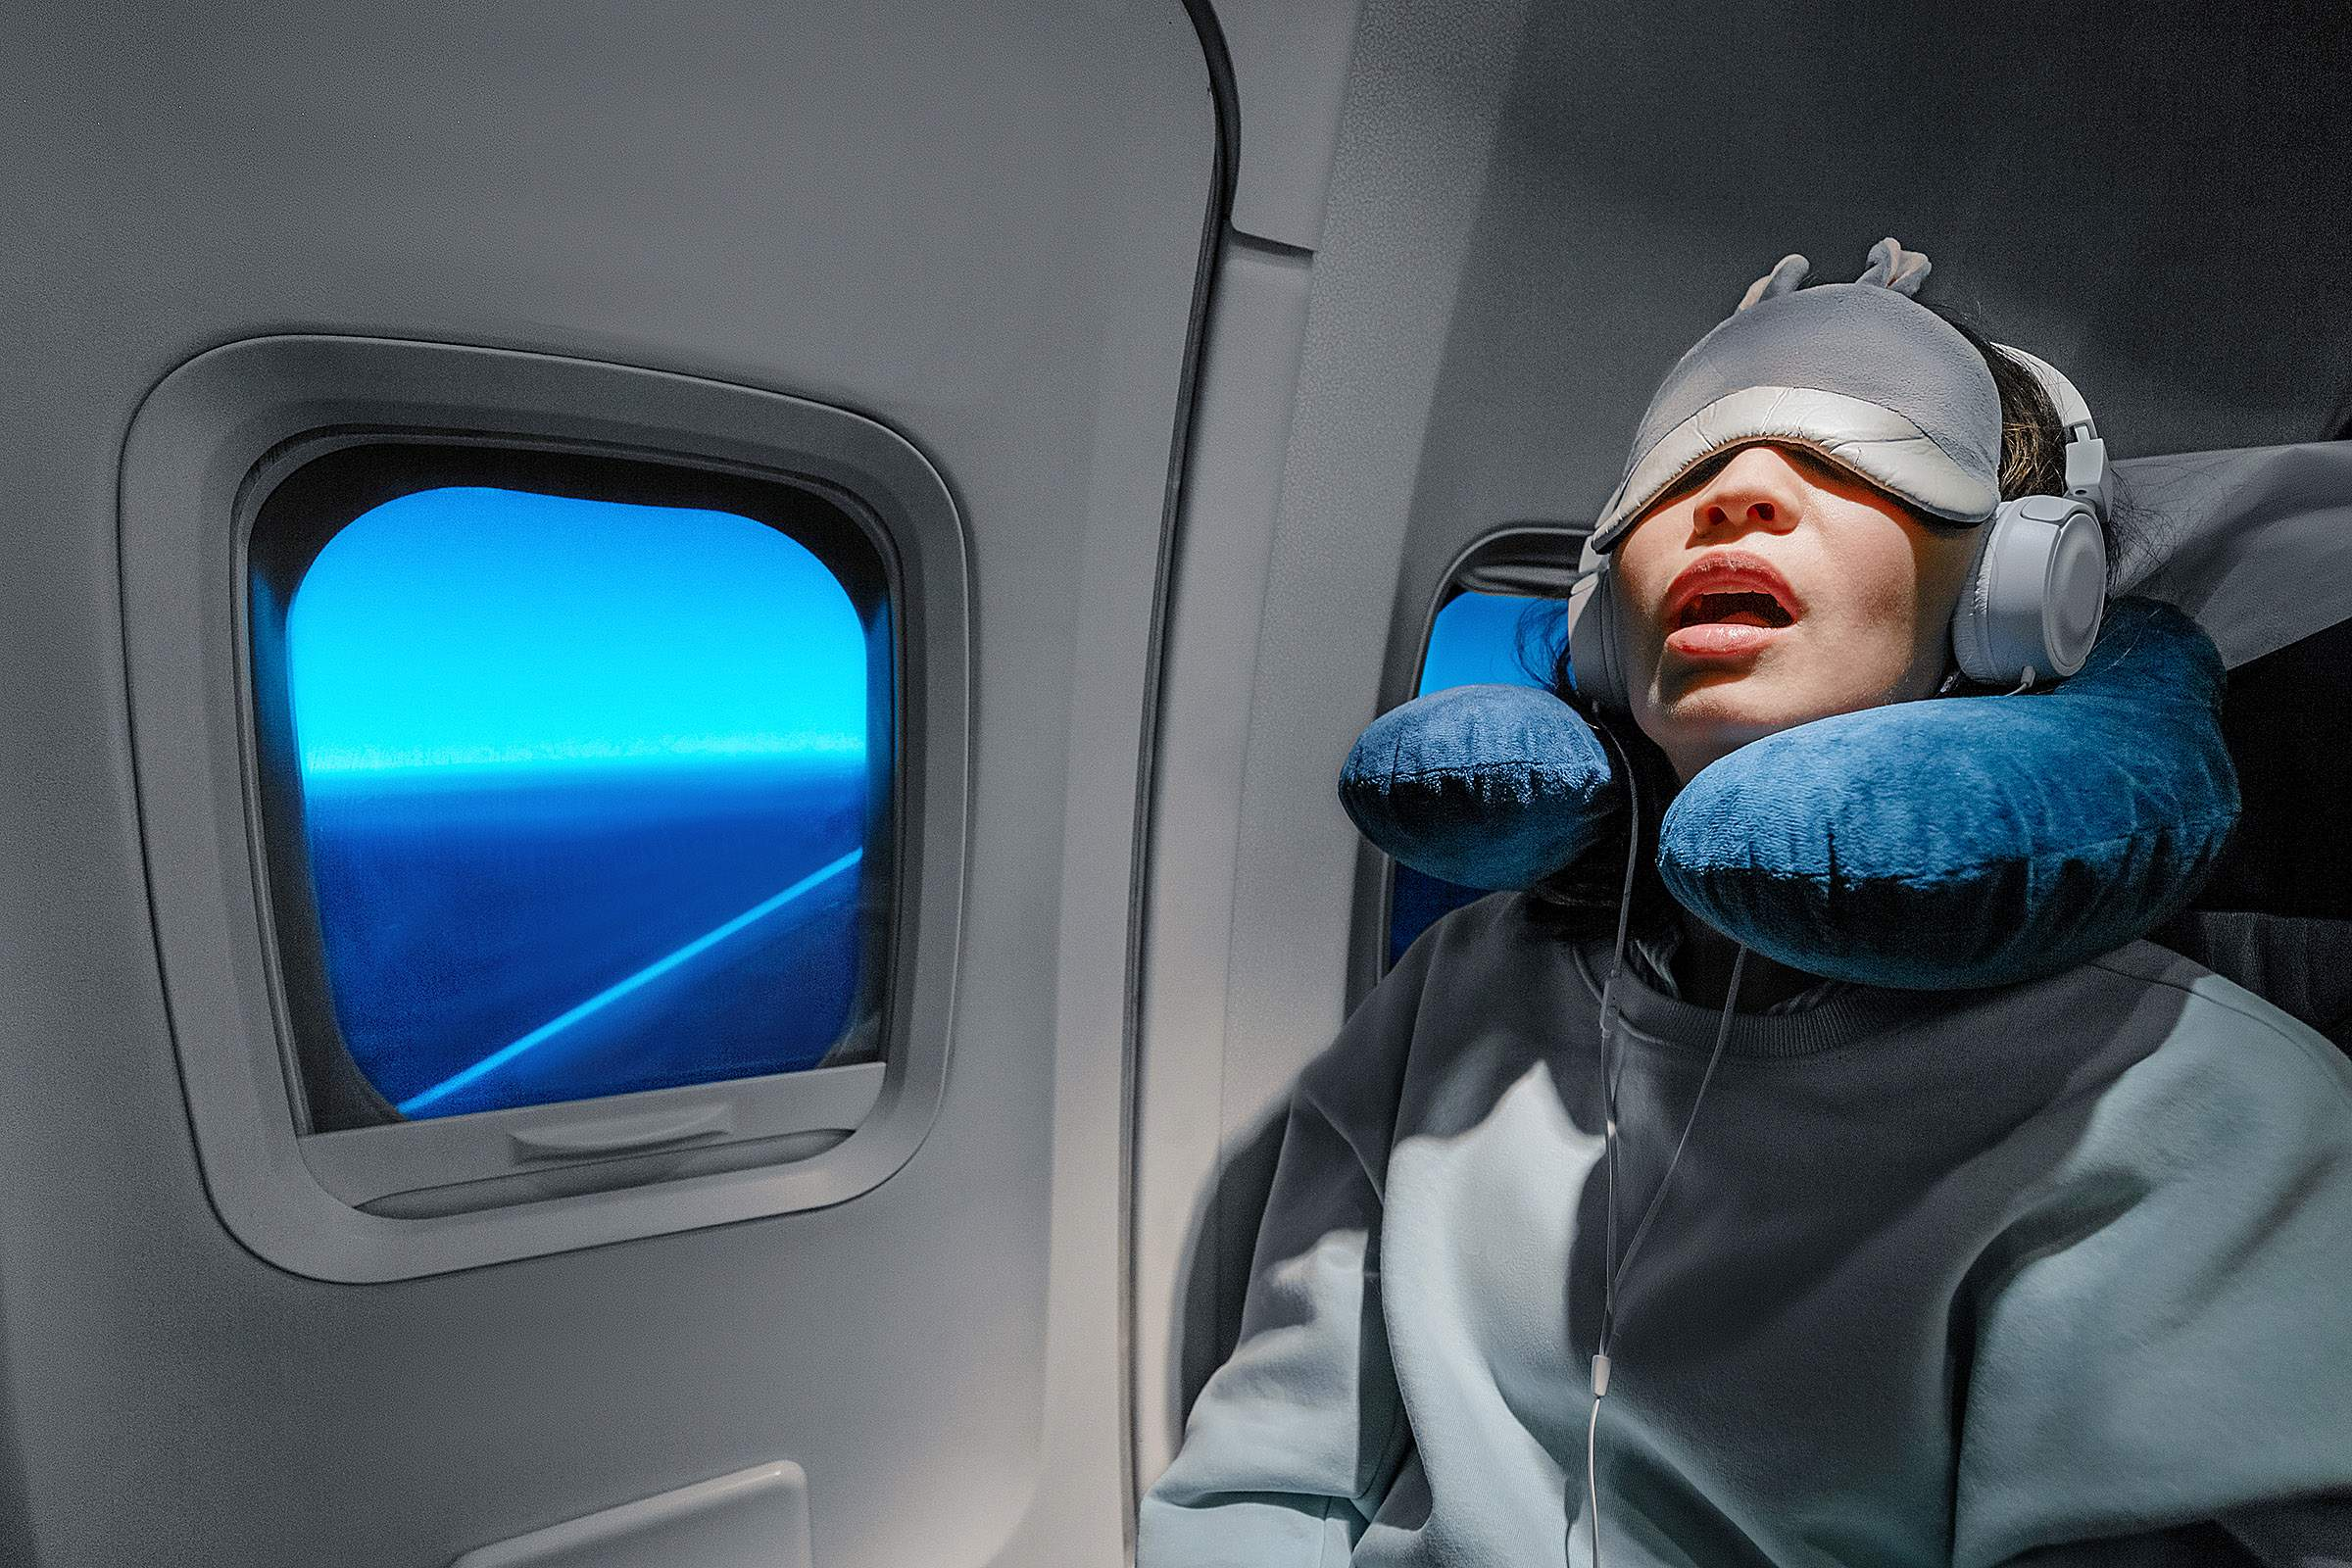 8 essential items to help you sleep well on your next flight